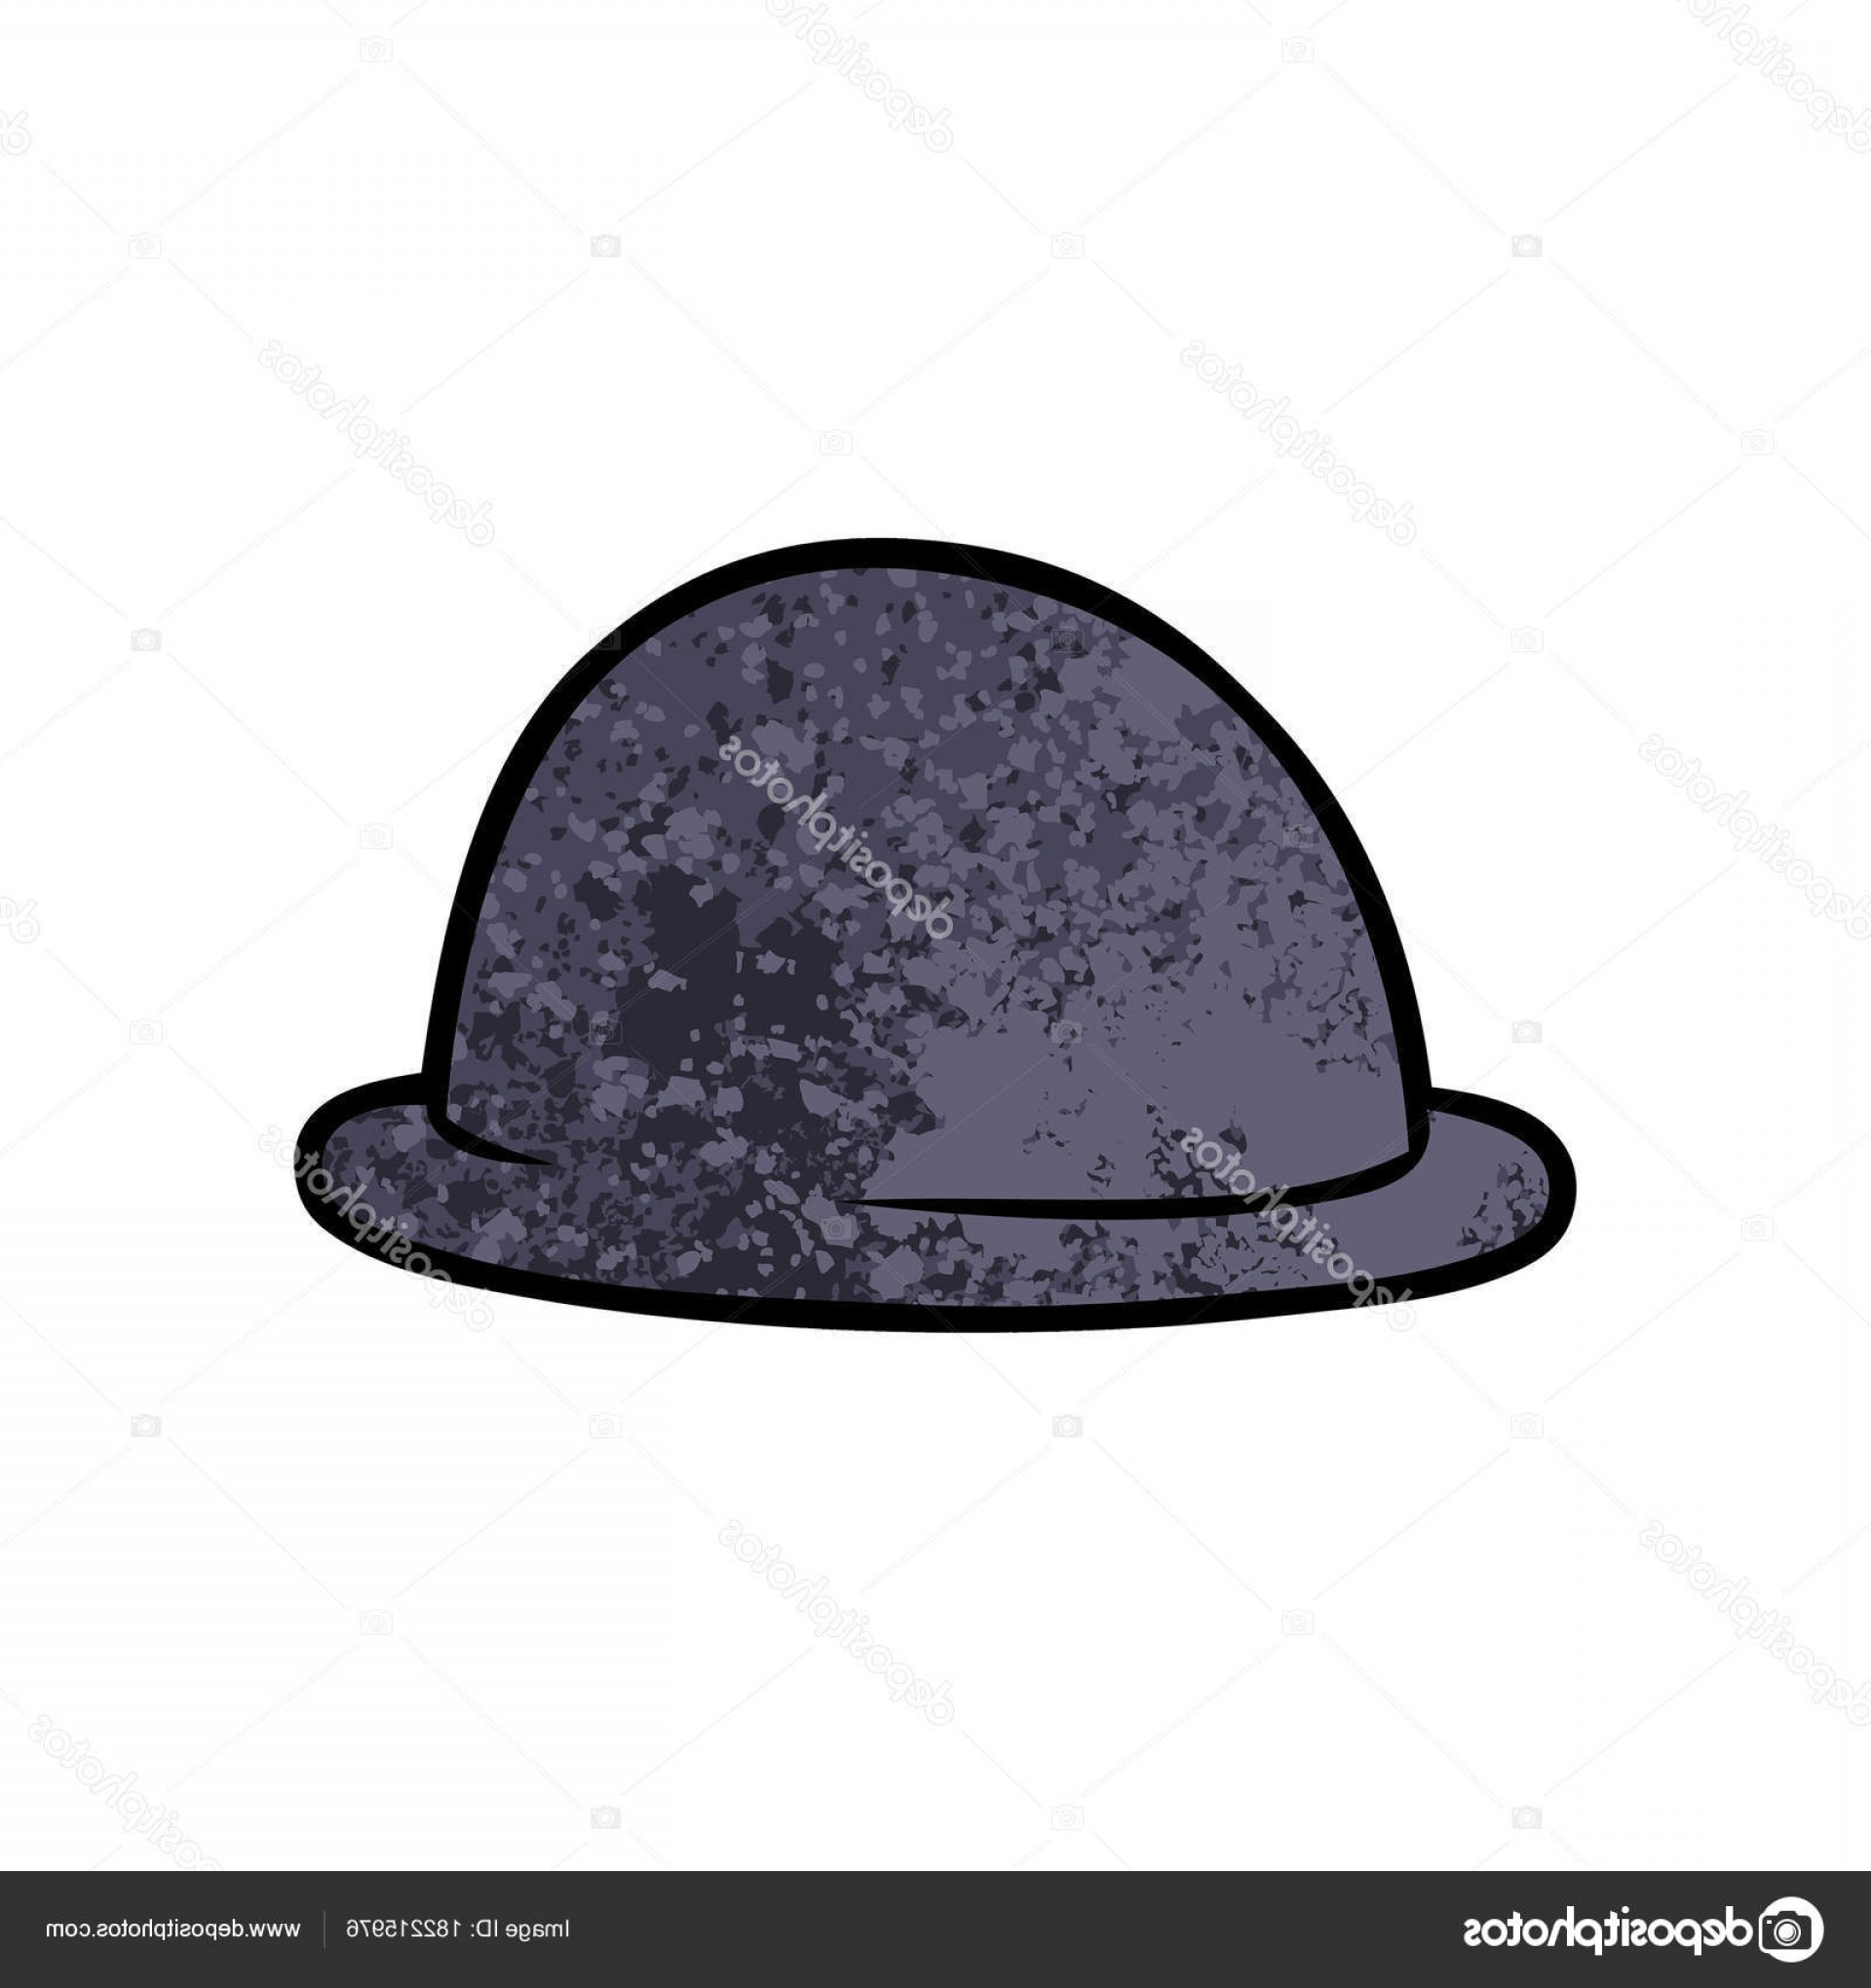 Bowler Hat Vector: Stock Illustration Vector Illustration Cartoon Bowler Hat